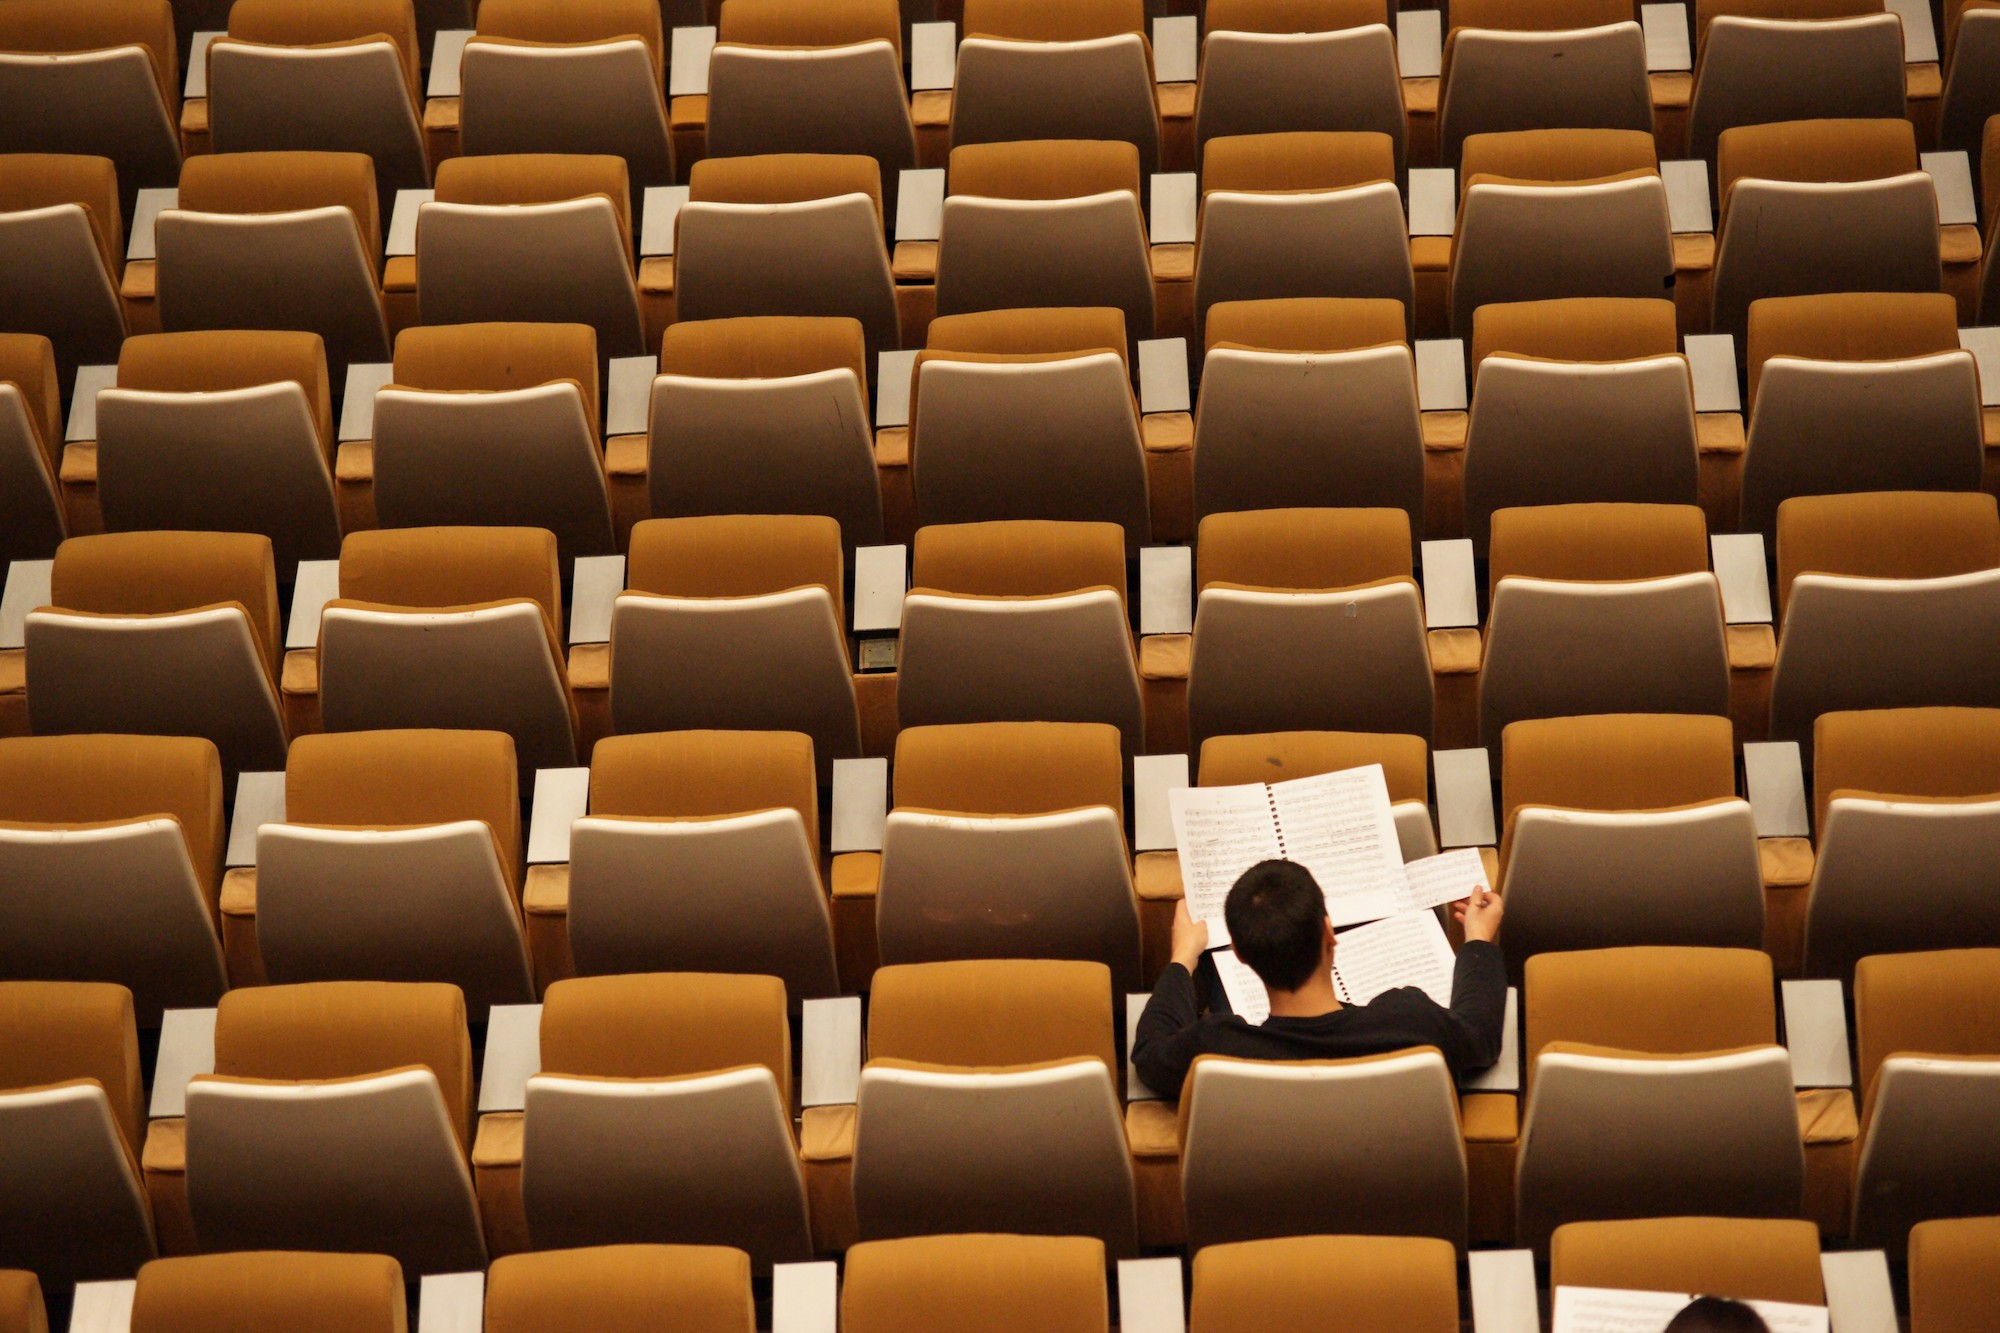 Person studying in a lecture hall